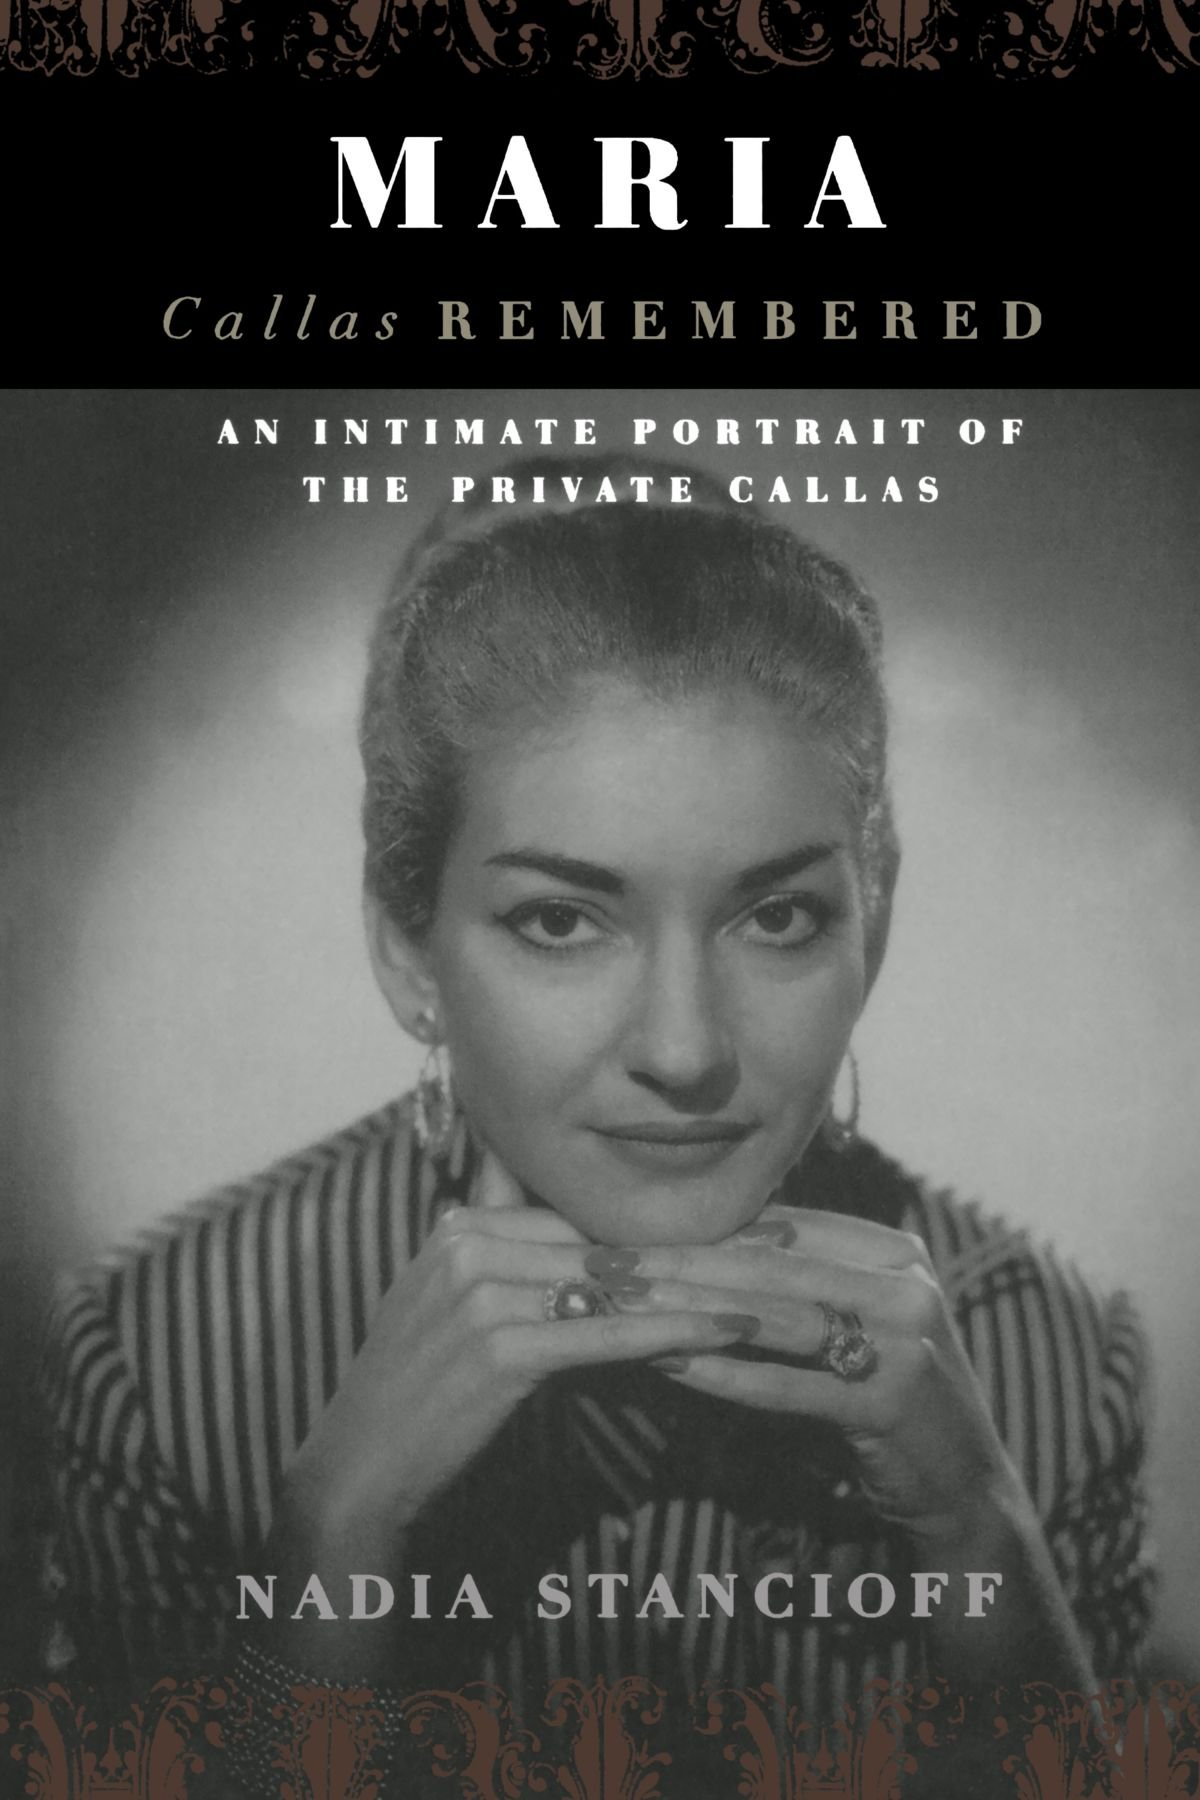 Maria callas remembered an intimate portrait of the private maria callas remembered an intimate portrait of the private callas nadia stancioff 9780306809675 amazon books fandeluxe Image collections